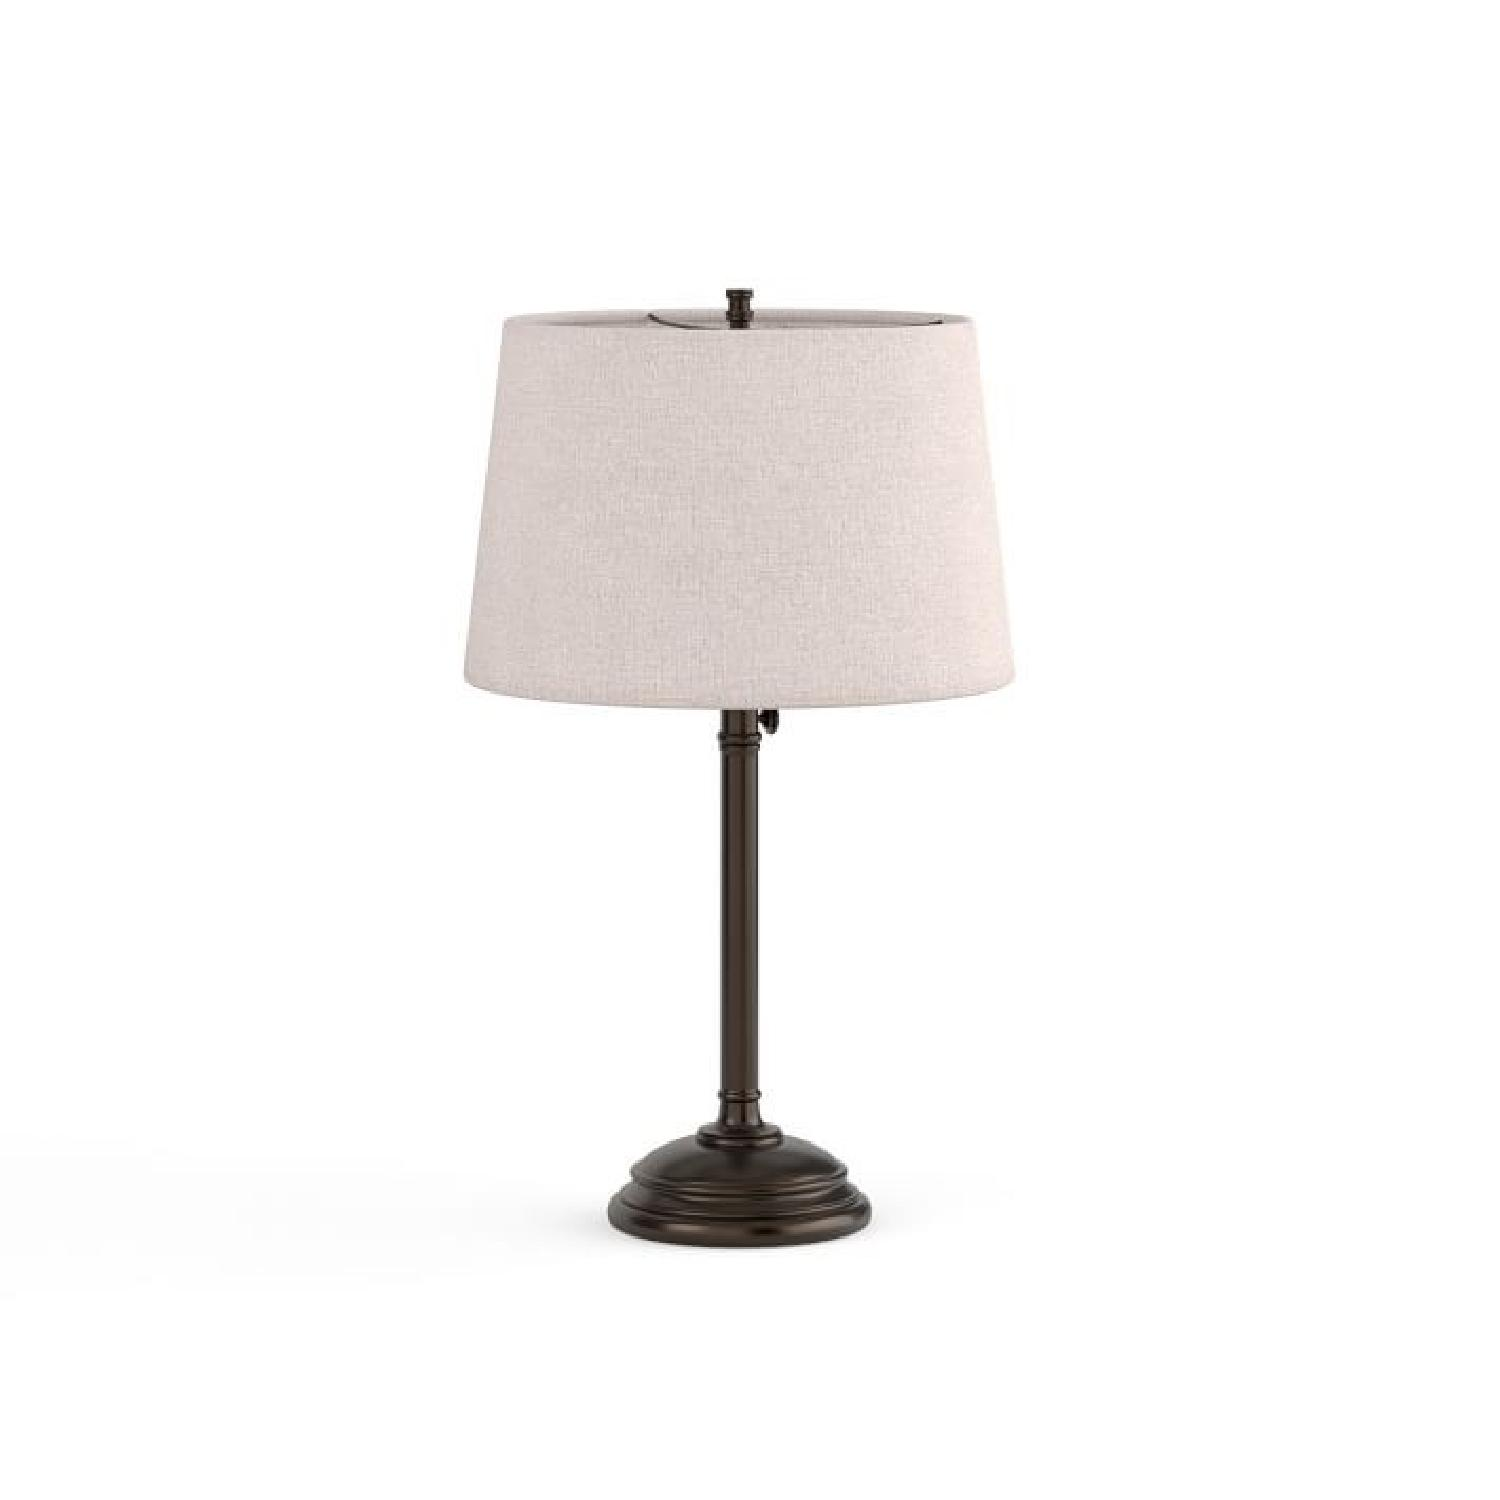 Pottery Barn Chelsea Adjustable Lamps